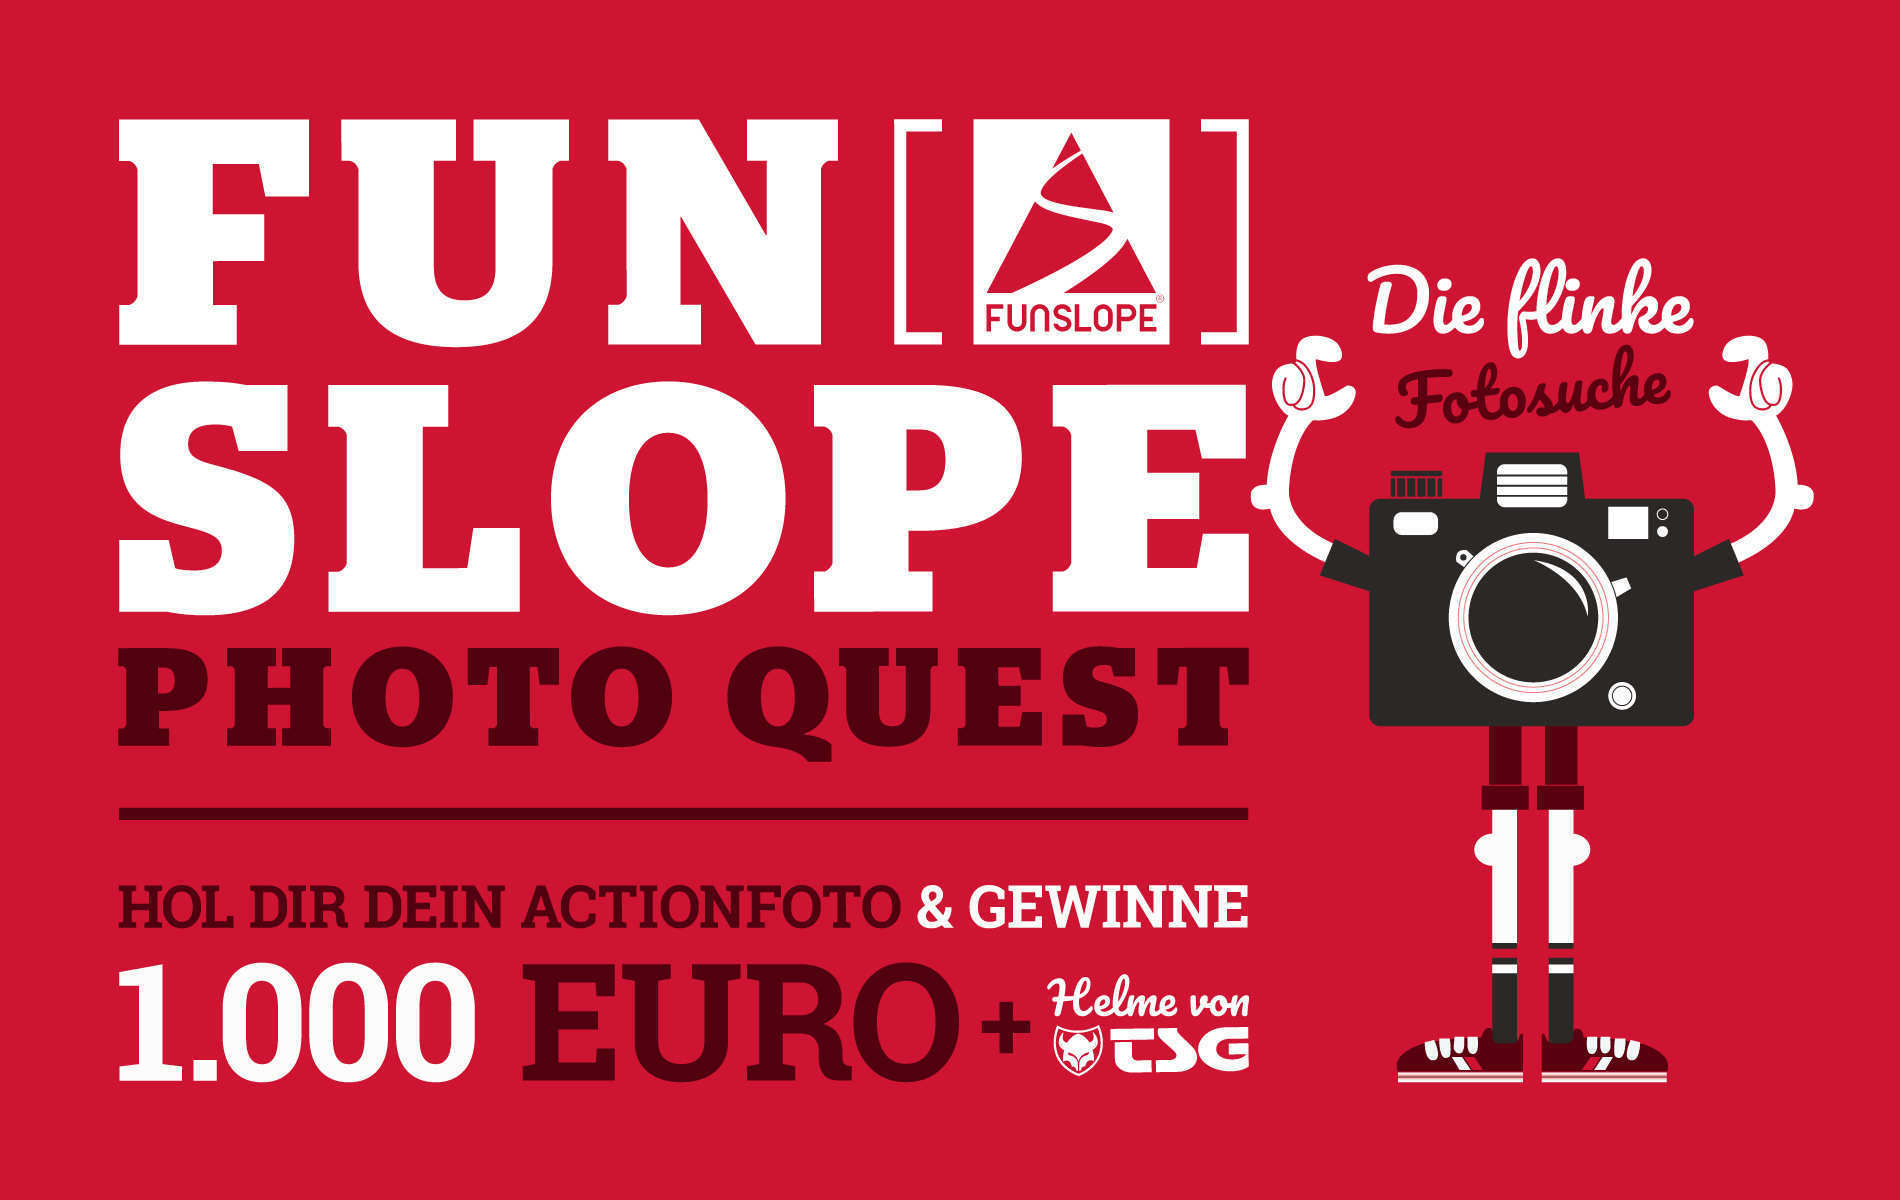 Funslope Photo Quest Hochgurgl - 27.03.2018